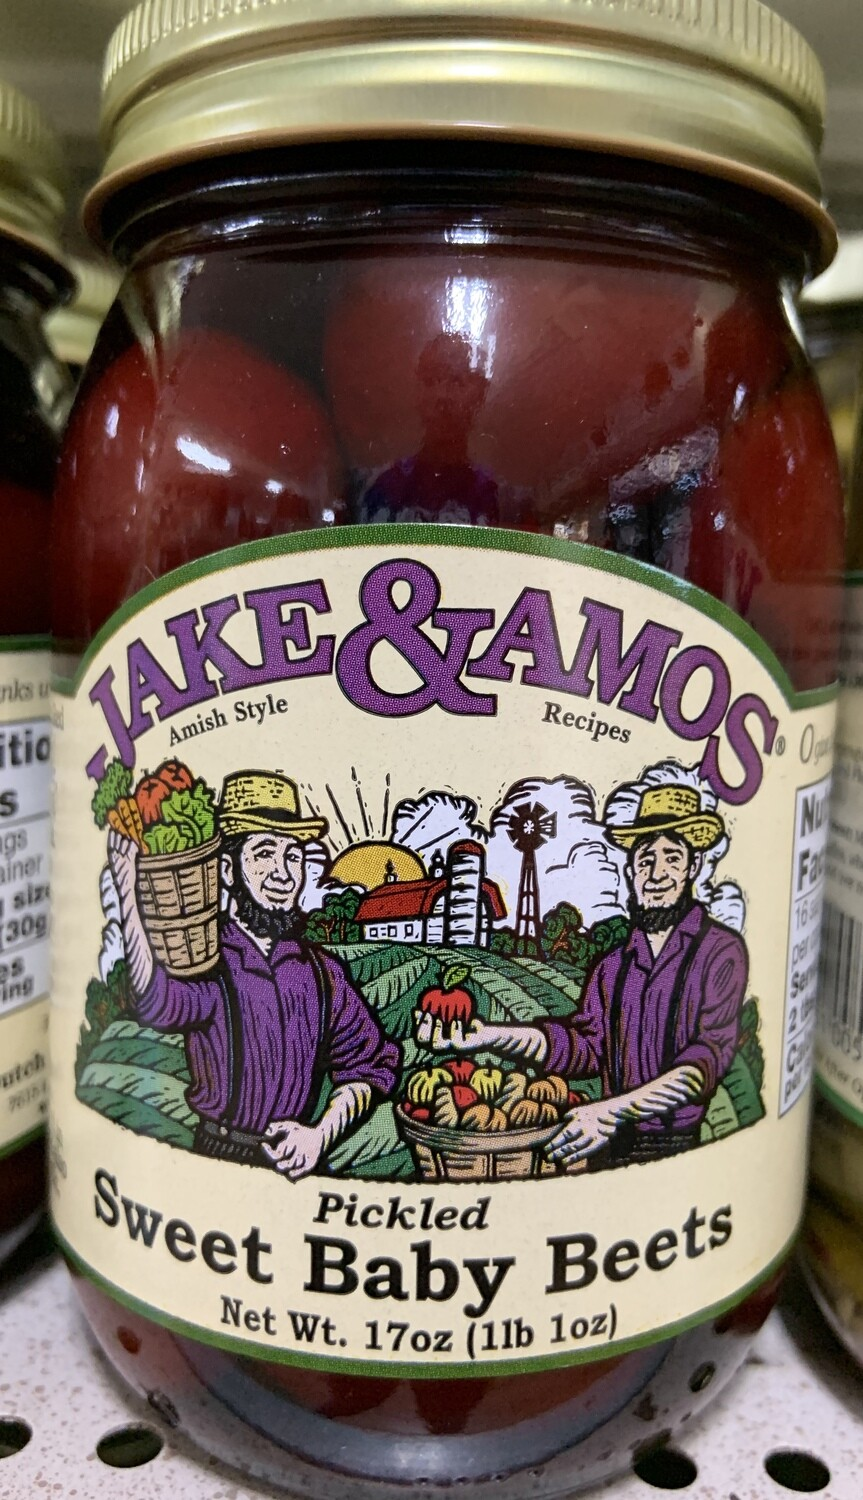 Jake and Amos Pickled Sweet Baby Beets 16 oz